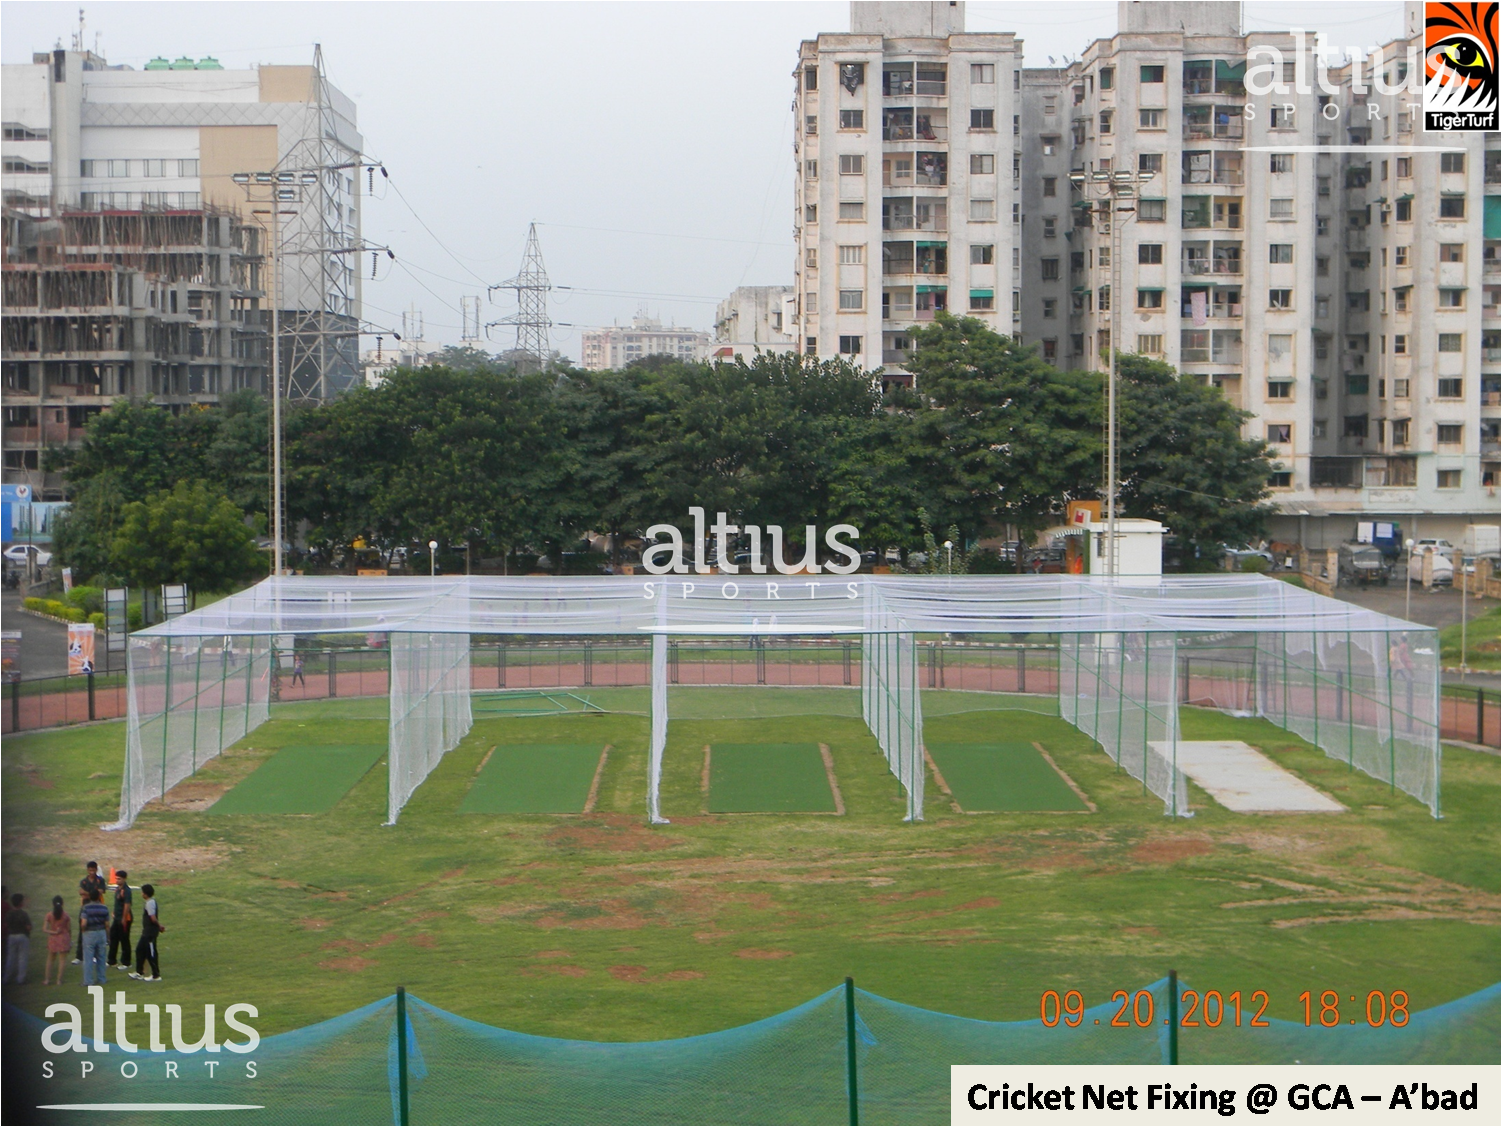 altius-cricket-turf